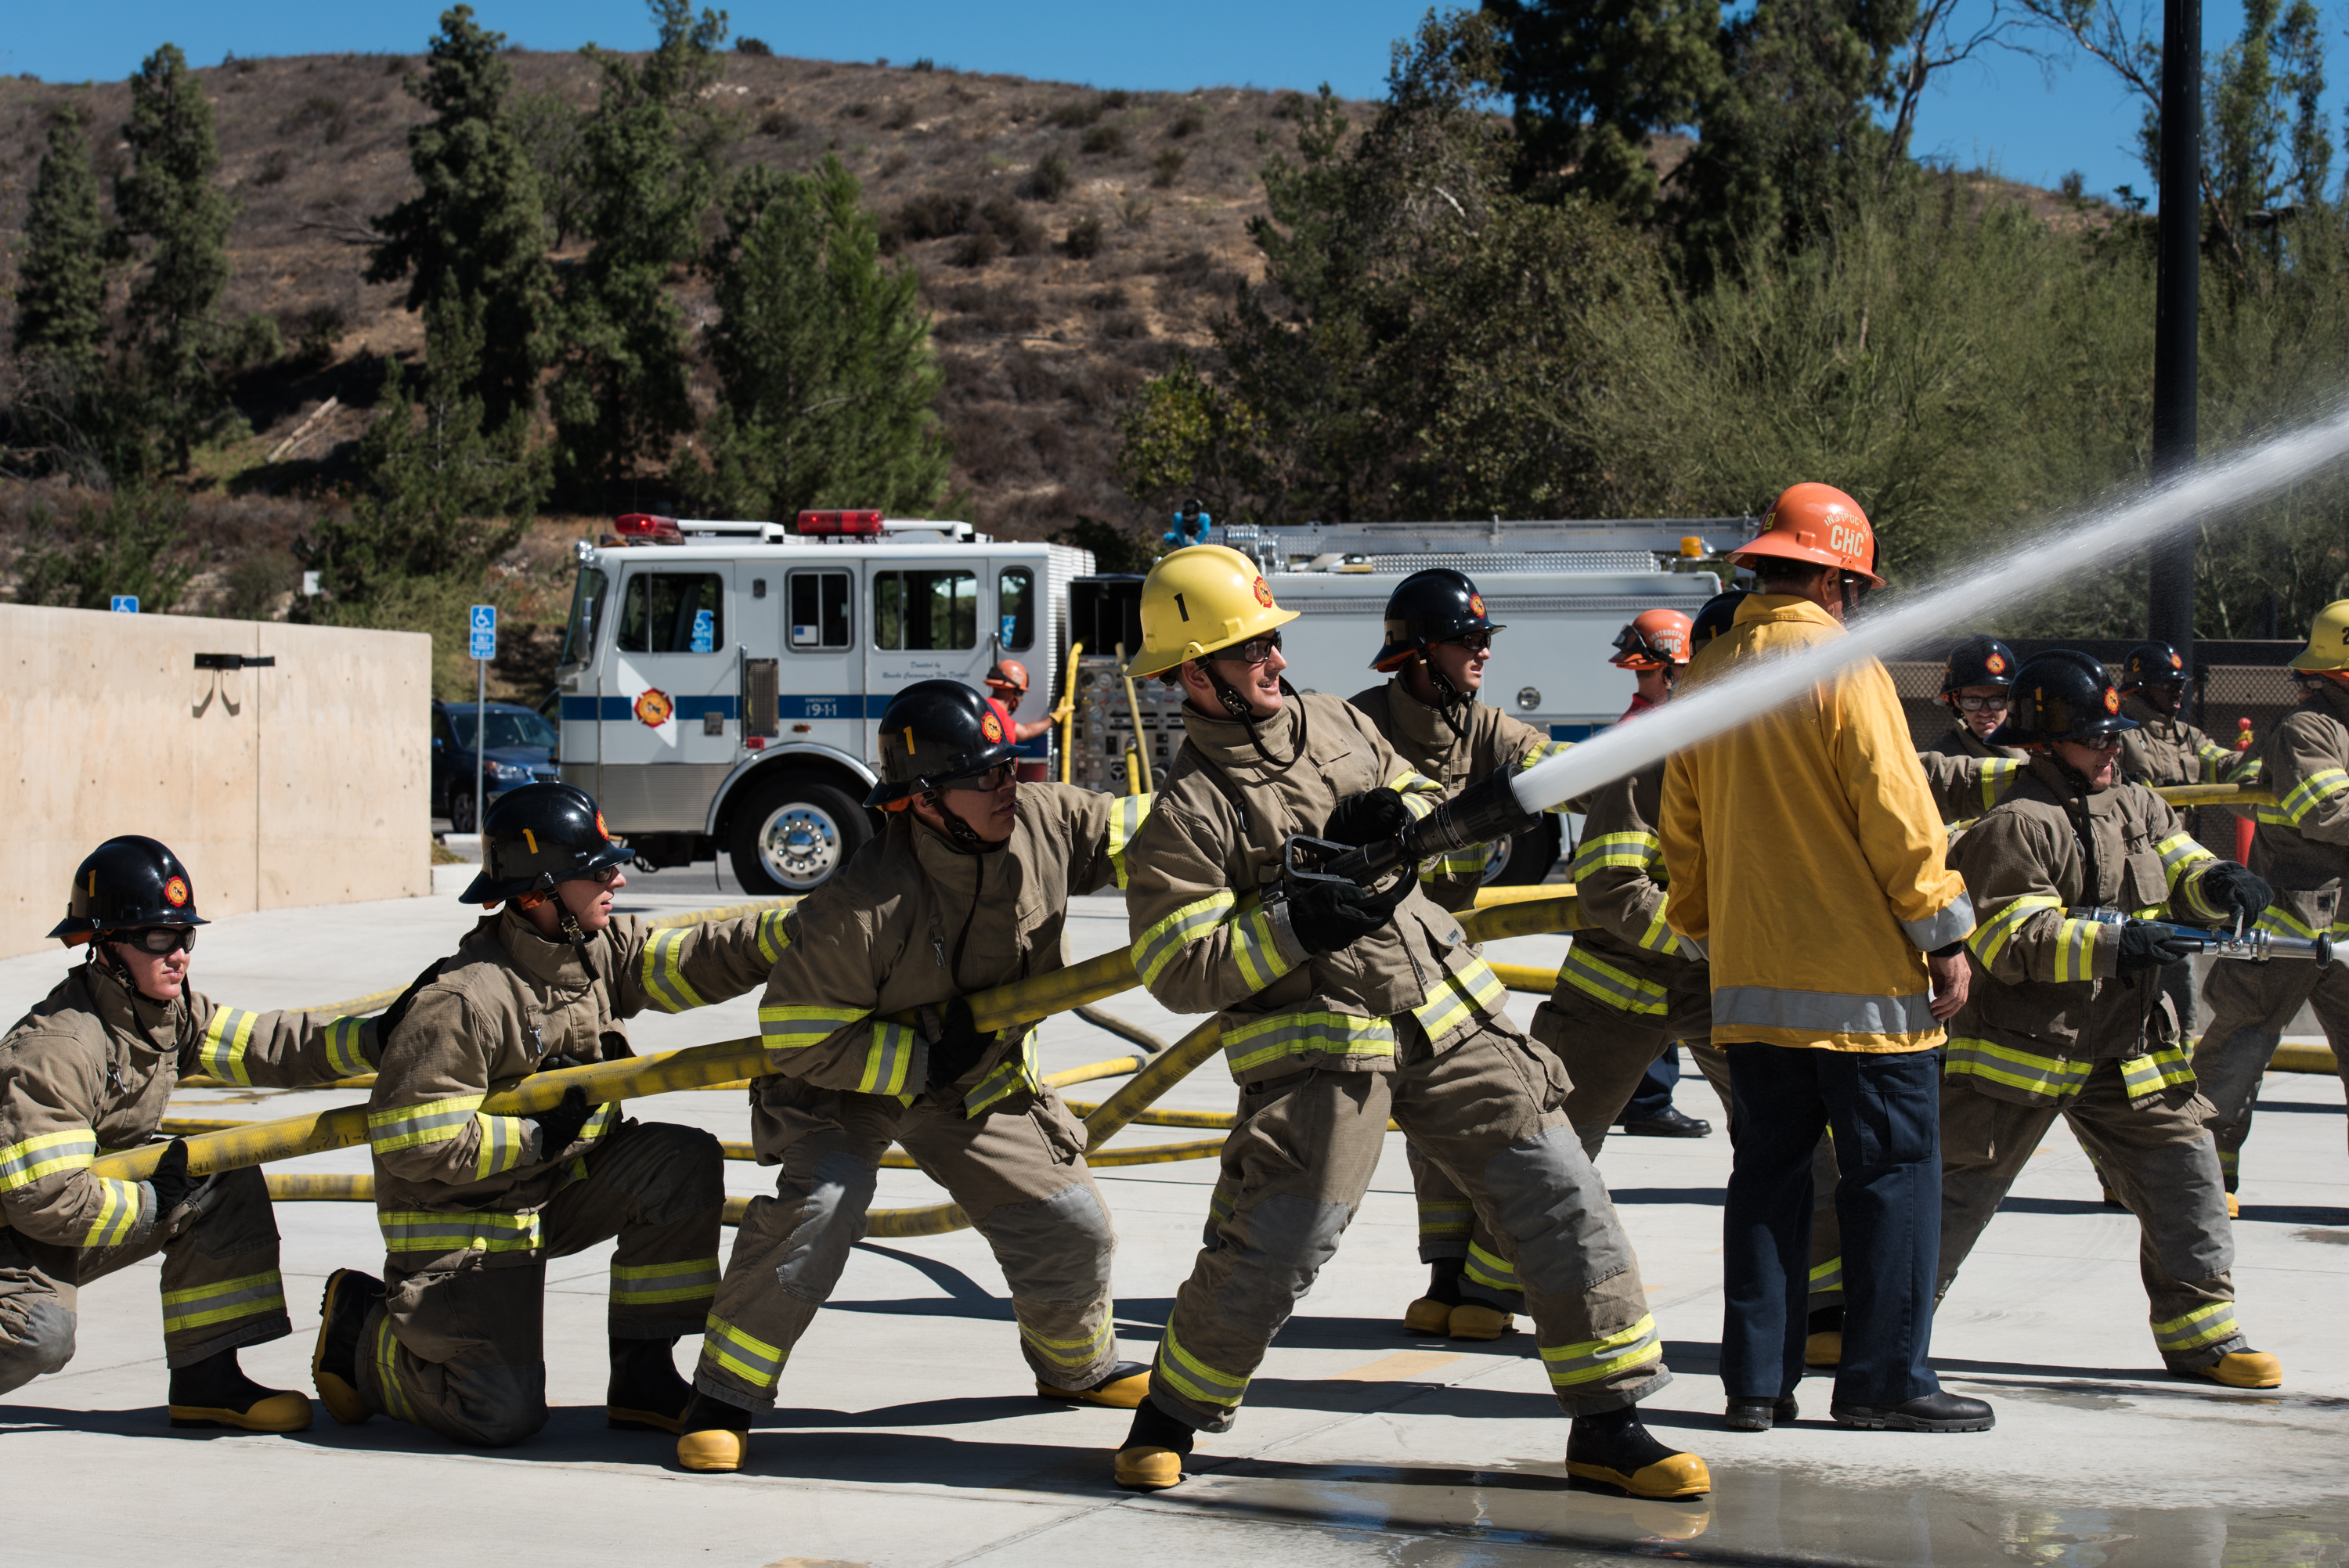 Crafton Hills Fire Academy Hopes to Increase Number of Female Firefighters